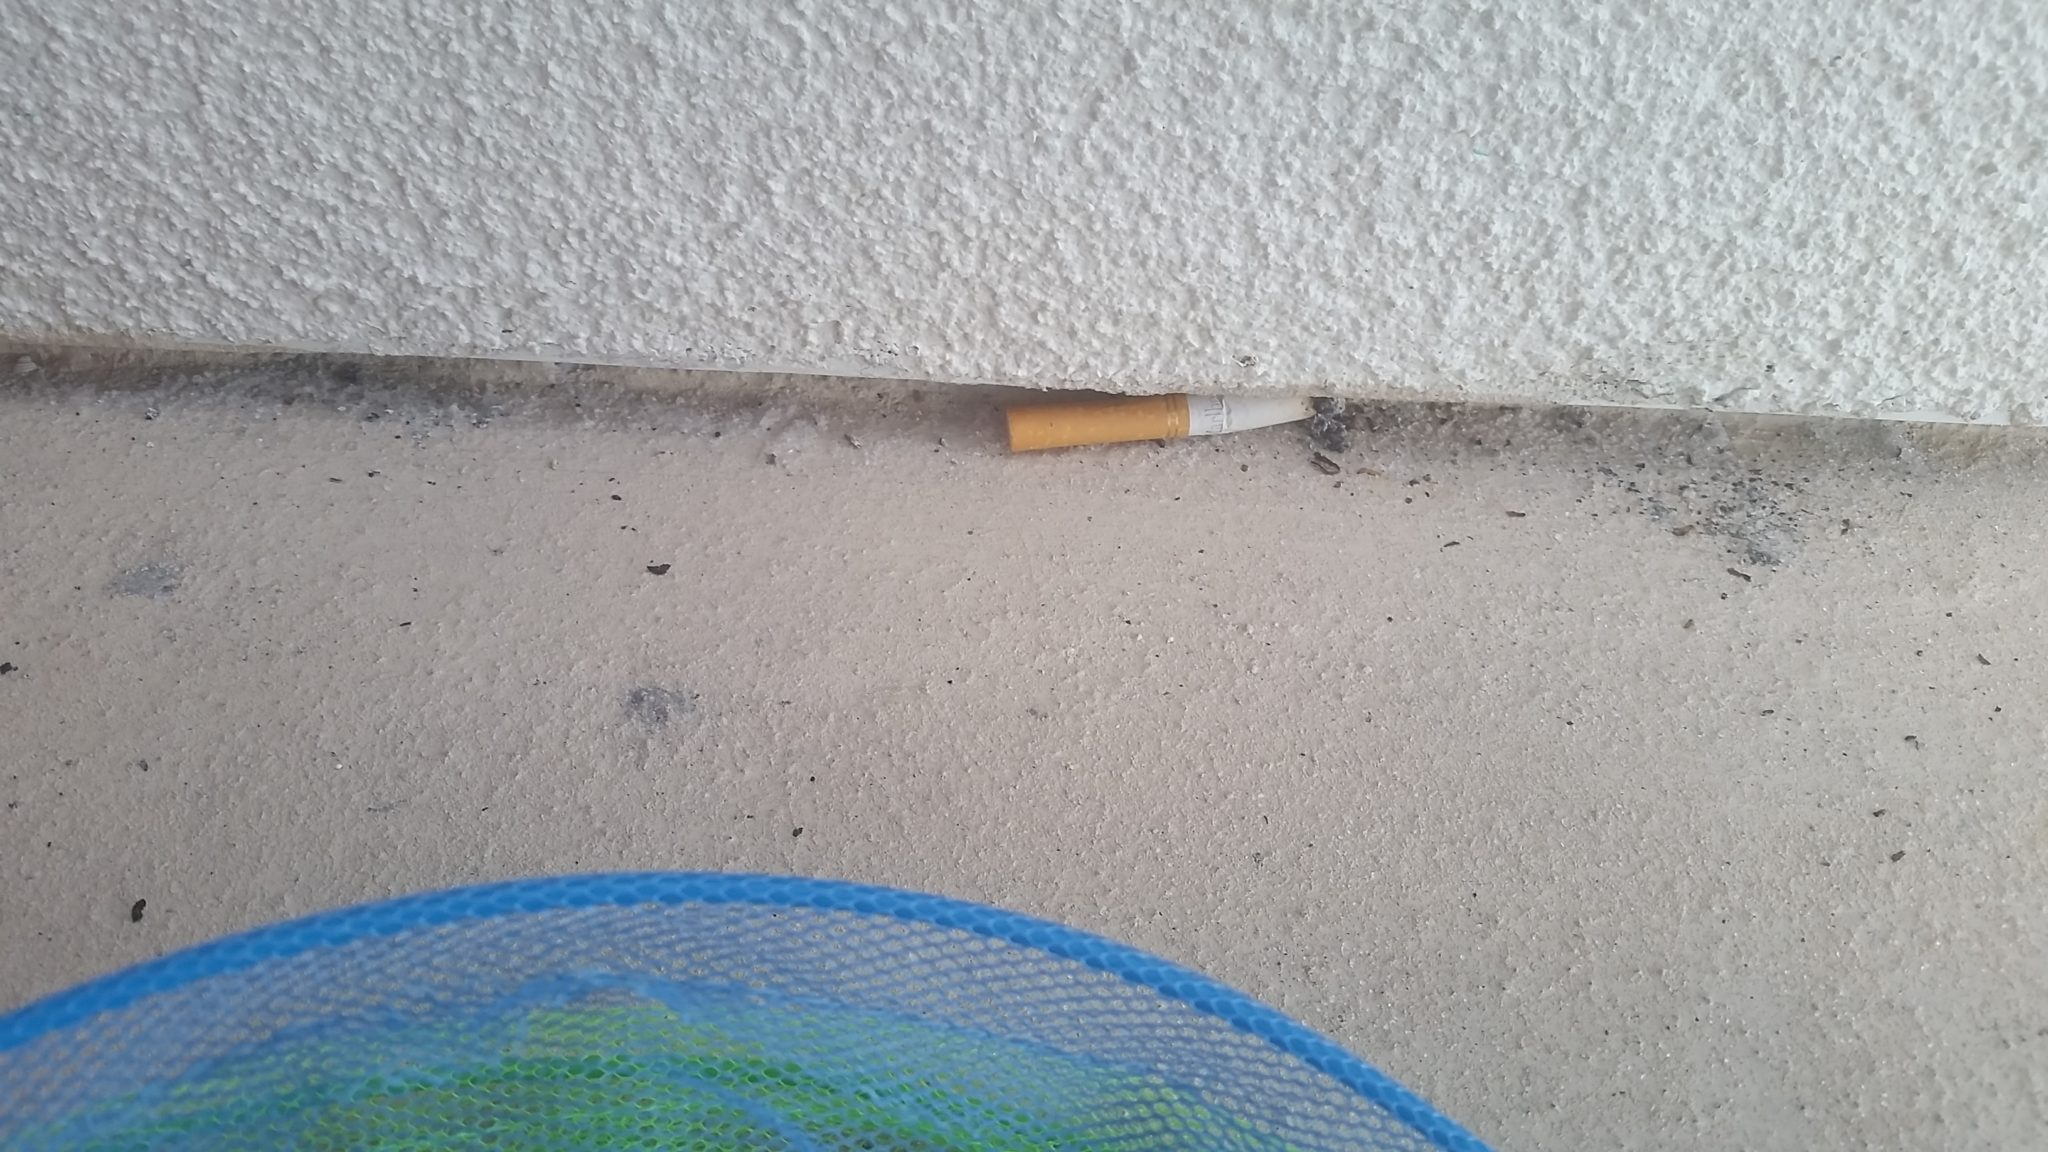 A leftover cigarette was not a welcome site at the Holiday Inn resort in Pensacola Beach